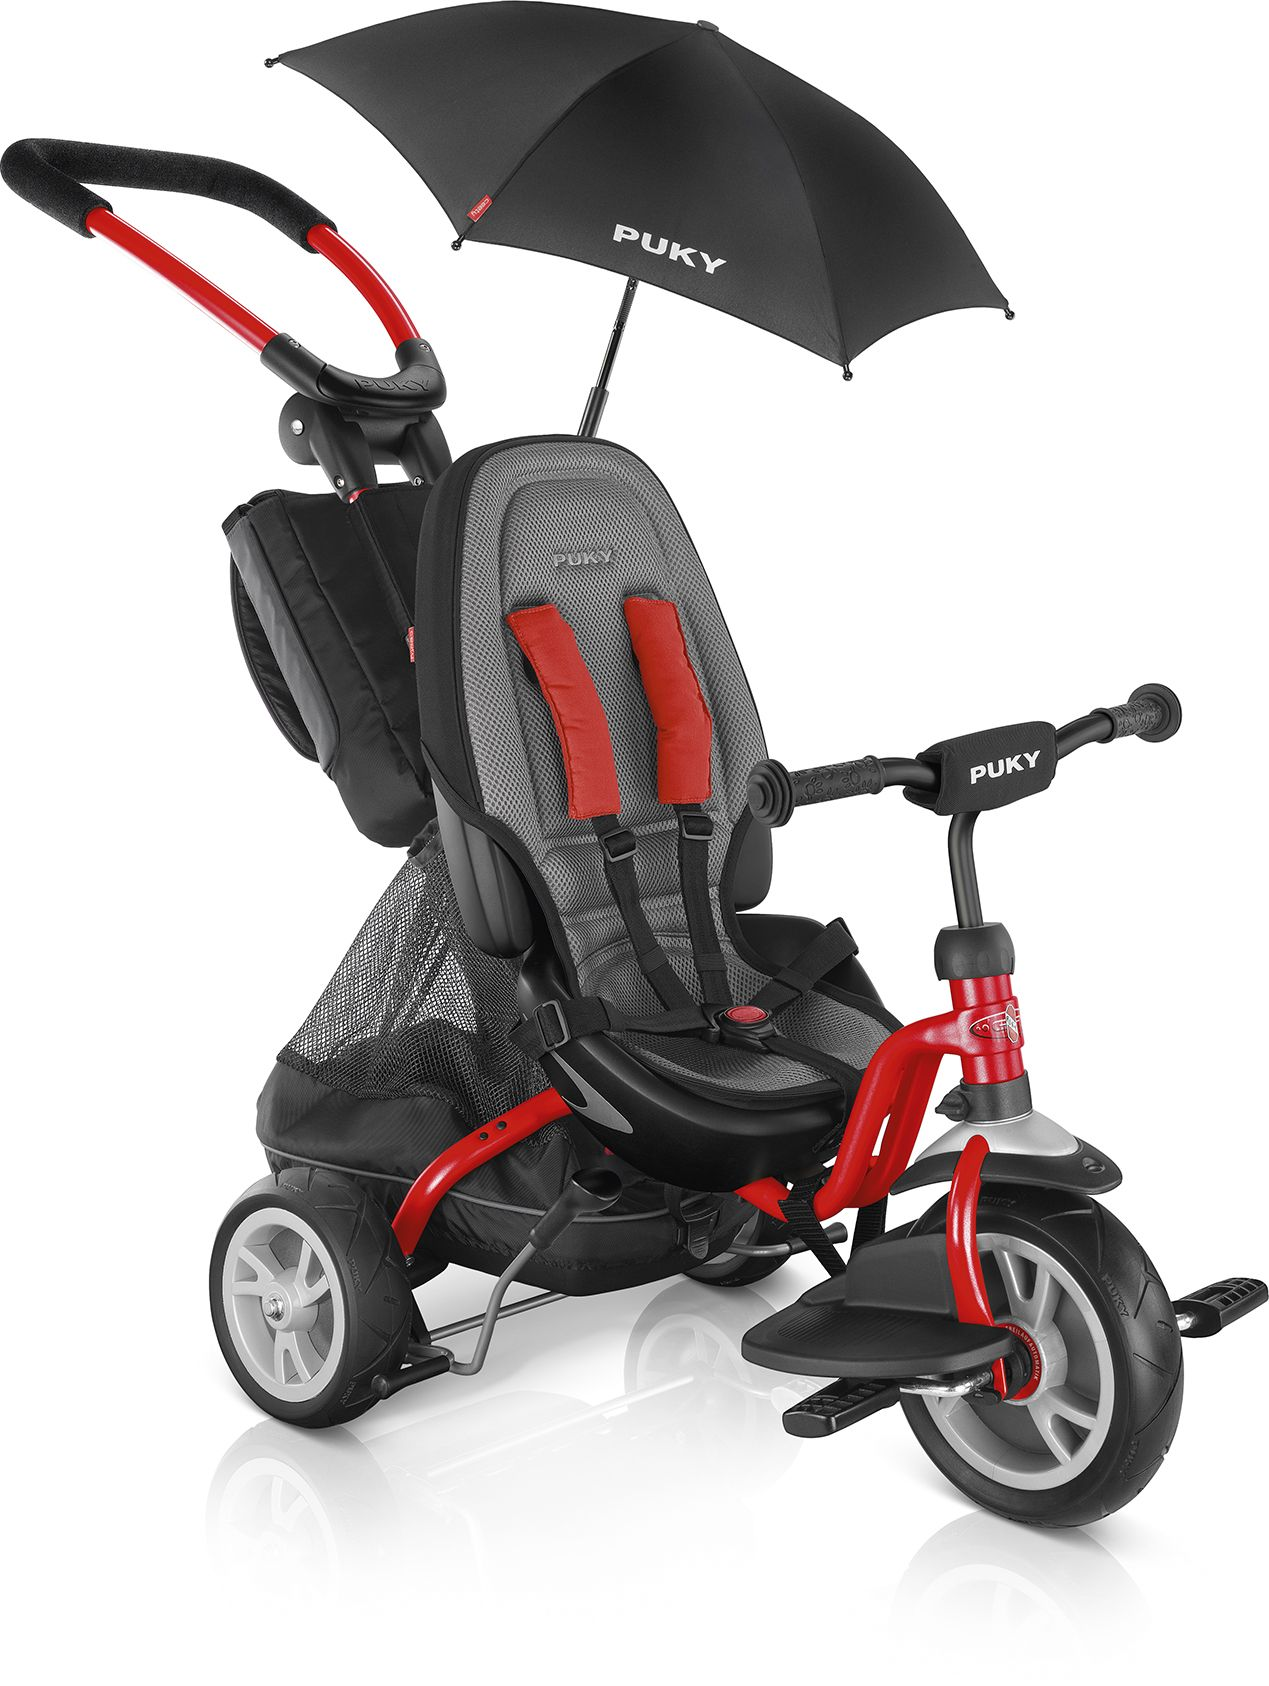 6e18d3d08d7 PUKY Tricycle CAT S6 Ceety 2018 Rot-Premium - Buy at kidsroom | Toys